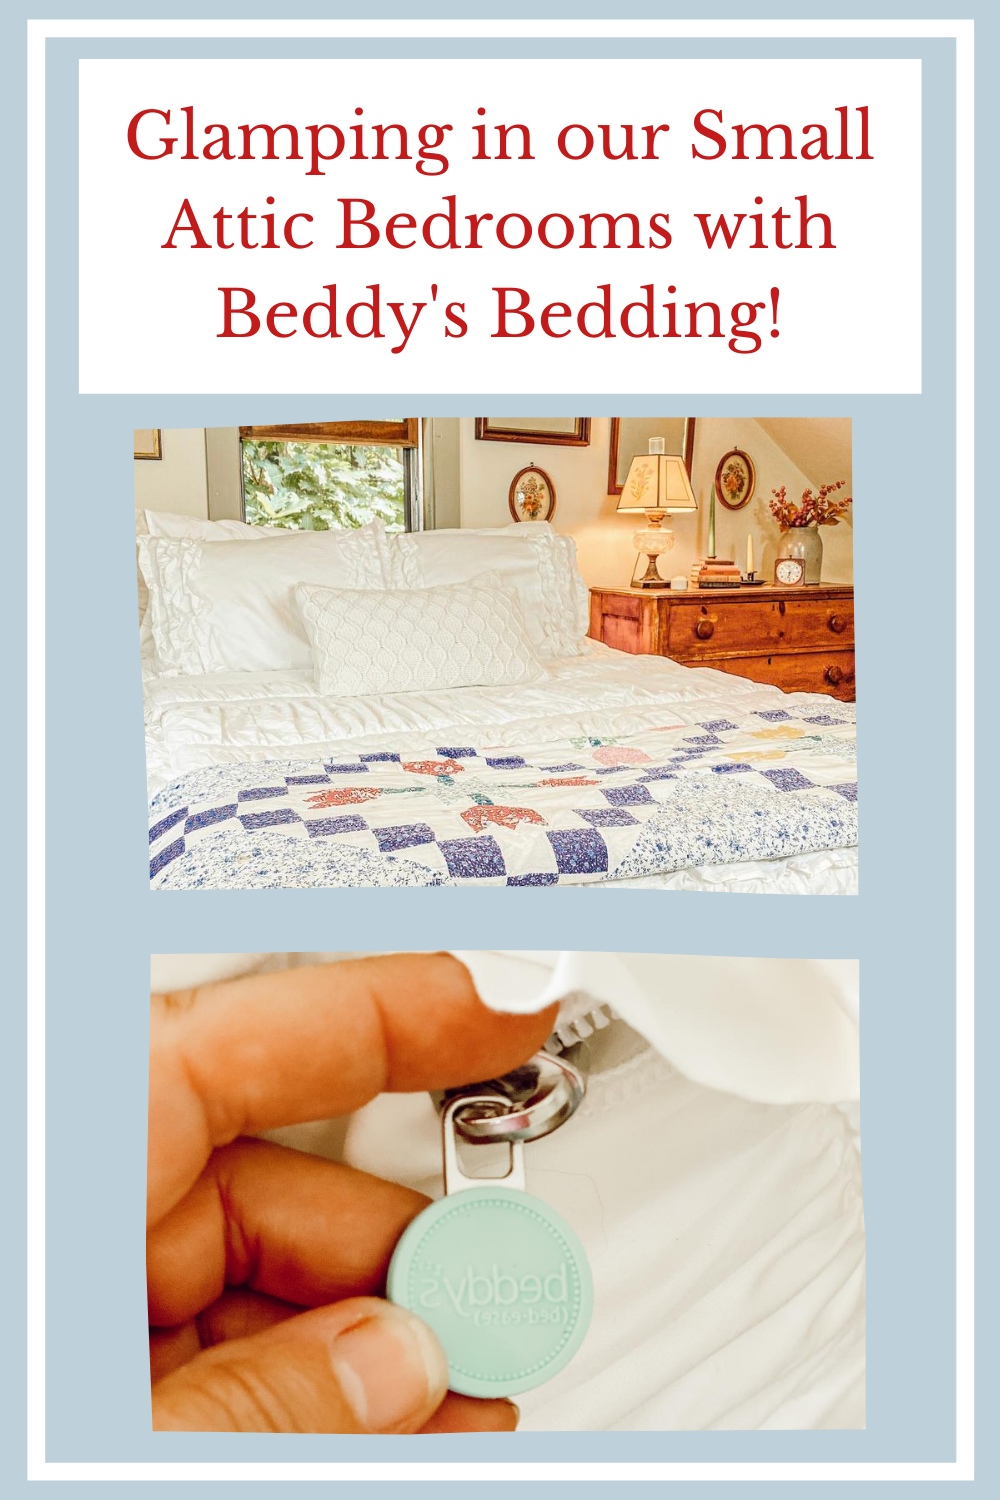 Glamping in our Small Attic Bedrooms with Beddy's Bedding